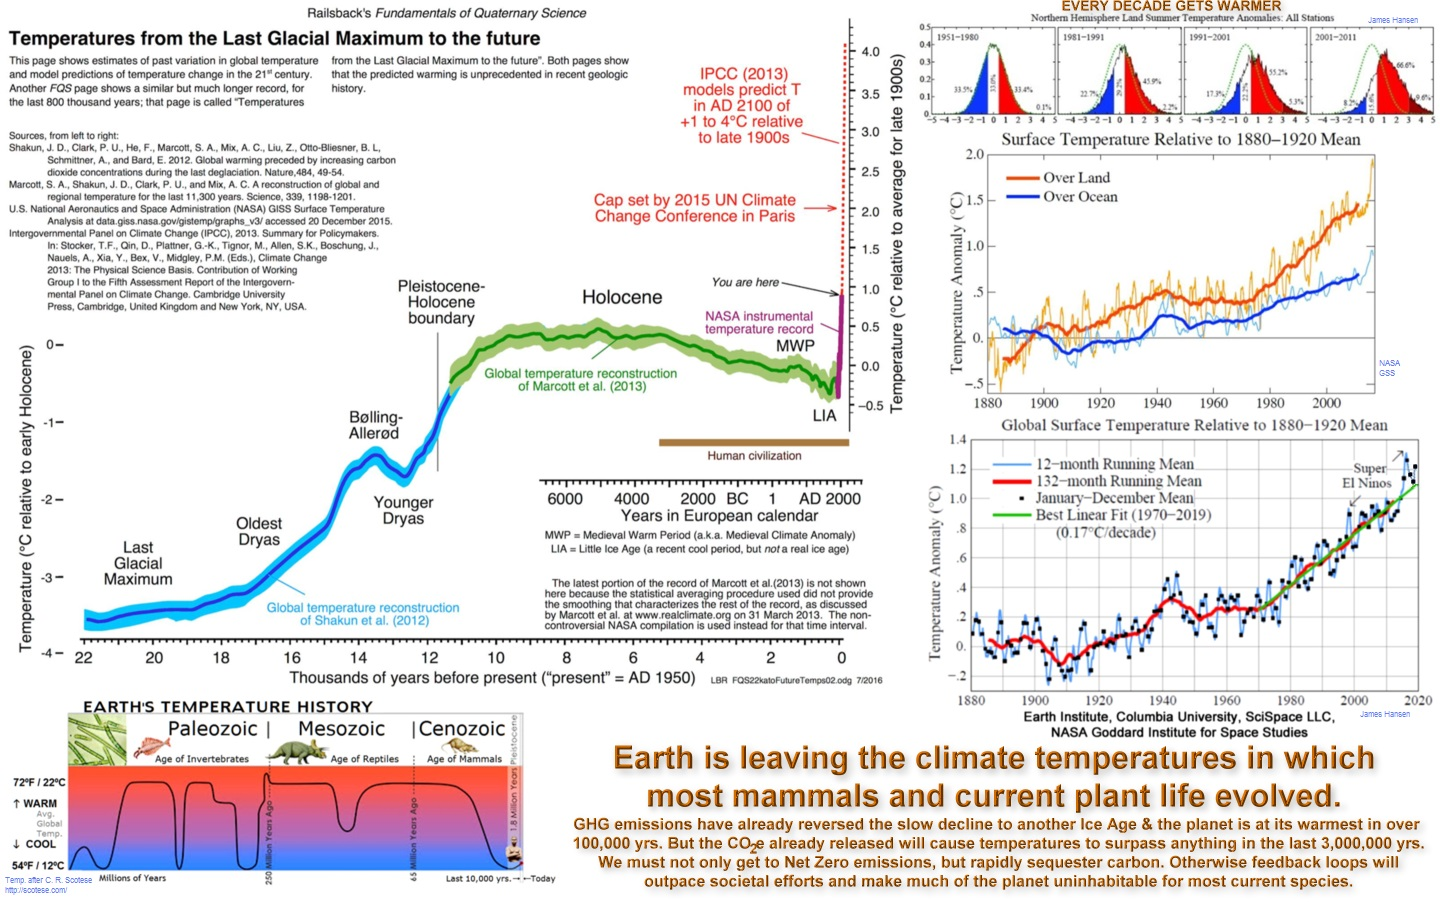 Earth's Temperature History vs Now